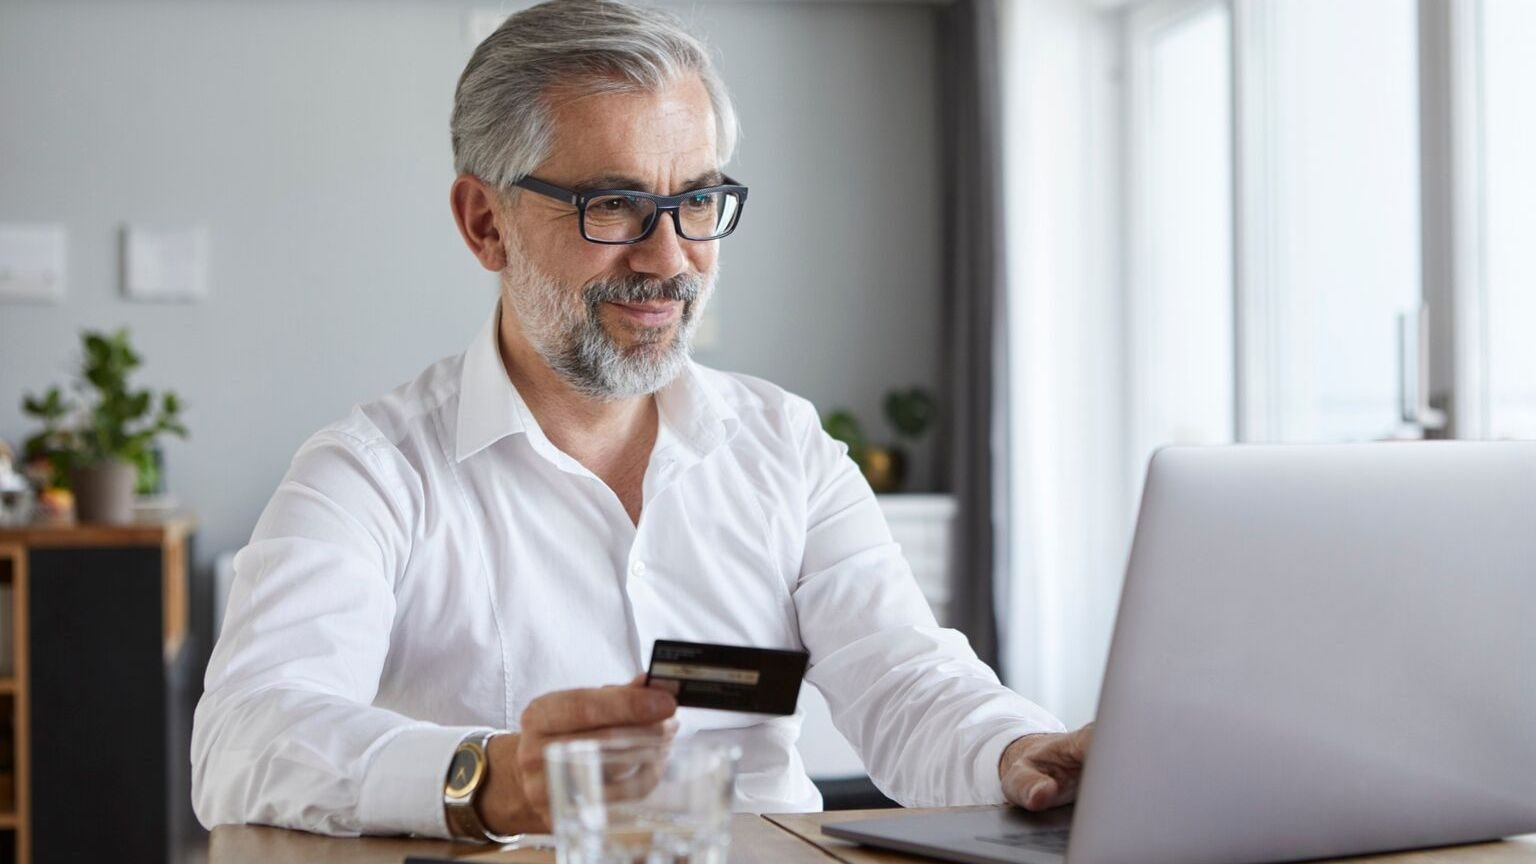 Want to earn more Aeroplan miles? Compare these providers of Aeroplan credit cards to get the highest return on rewards for the lowest fee.